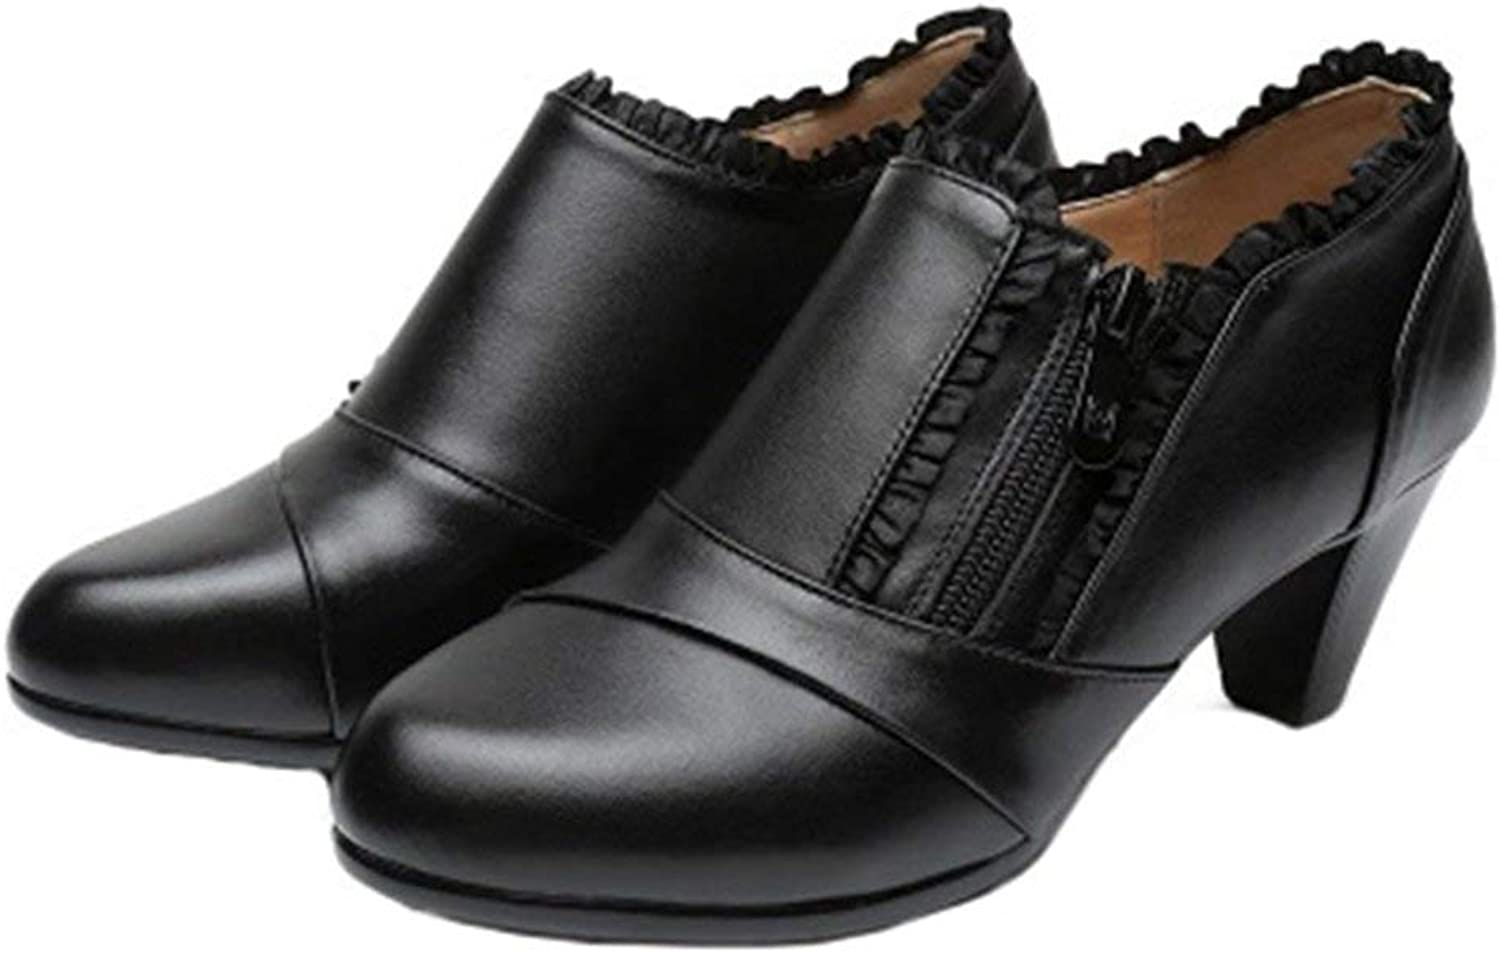 Beautiful - Fashion Oxfords Pumps for Womens, Slip-On Pointed Toe Block Heel Zipper Dress Oxford Loafers Pump shoes Black